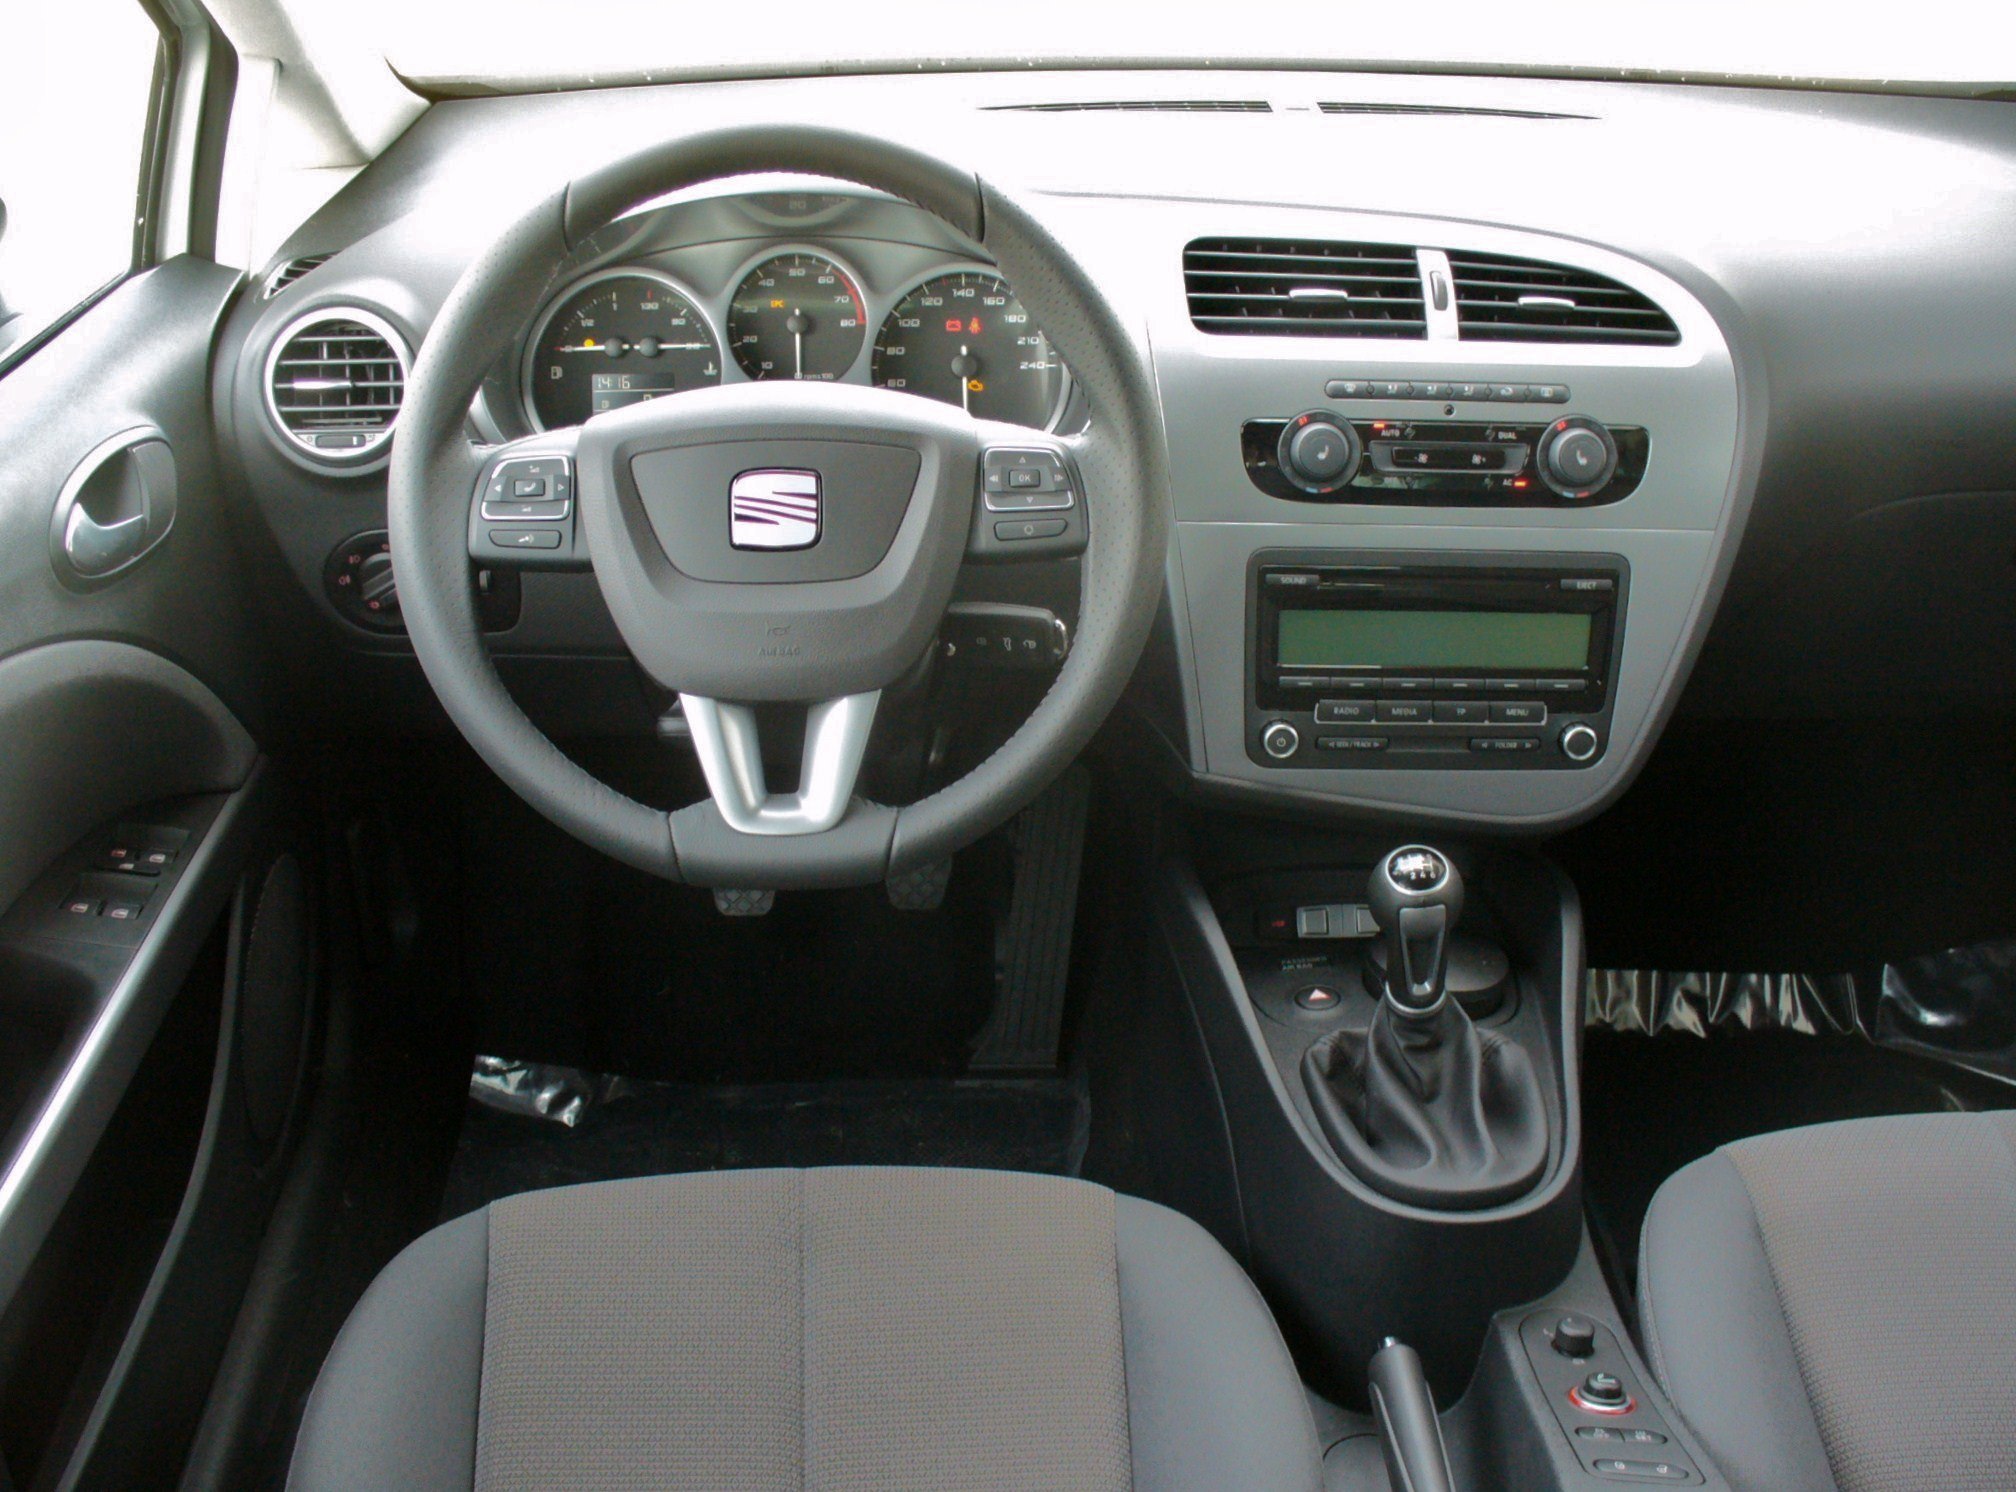 https://upload.wikimedia.org/wikipedia/commons/3/3a/Seat_Leon_1P_Facelift_1.4_TSI_Style_Candywei%C3%9F_Interieur.JPG